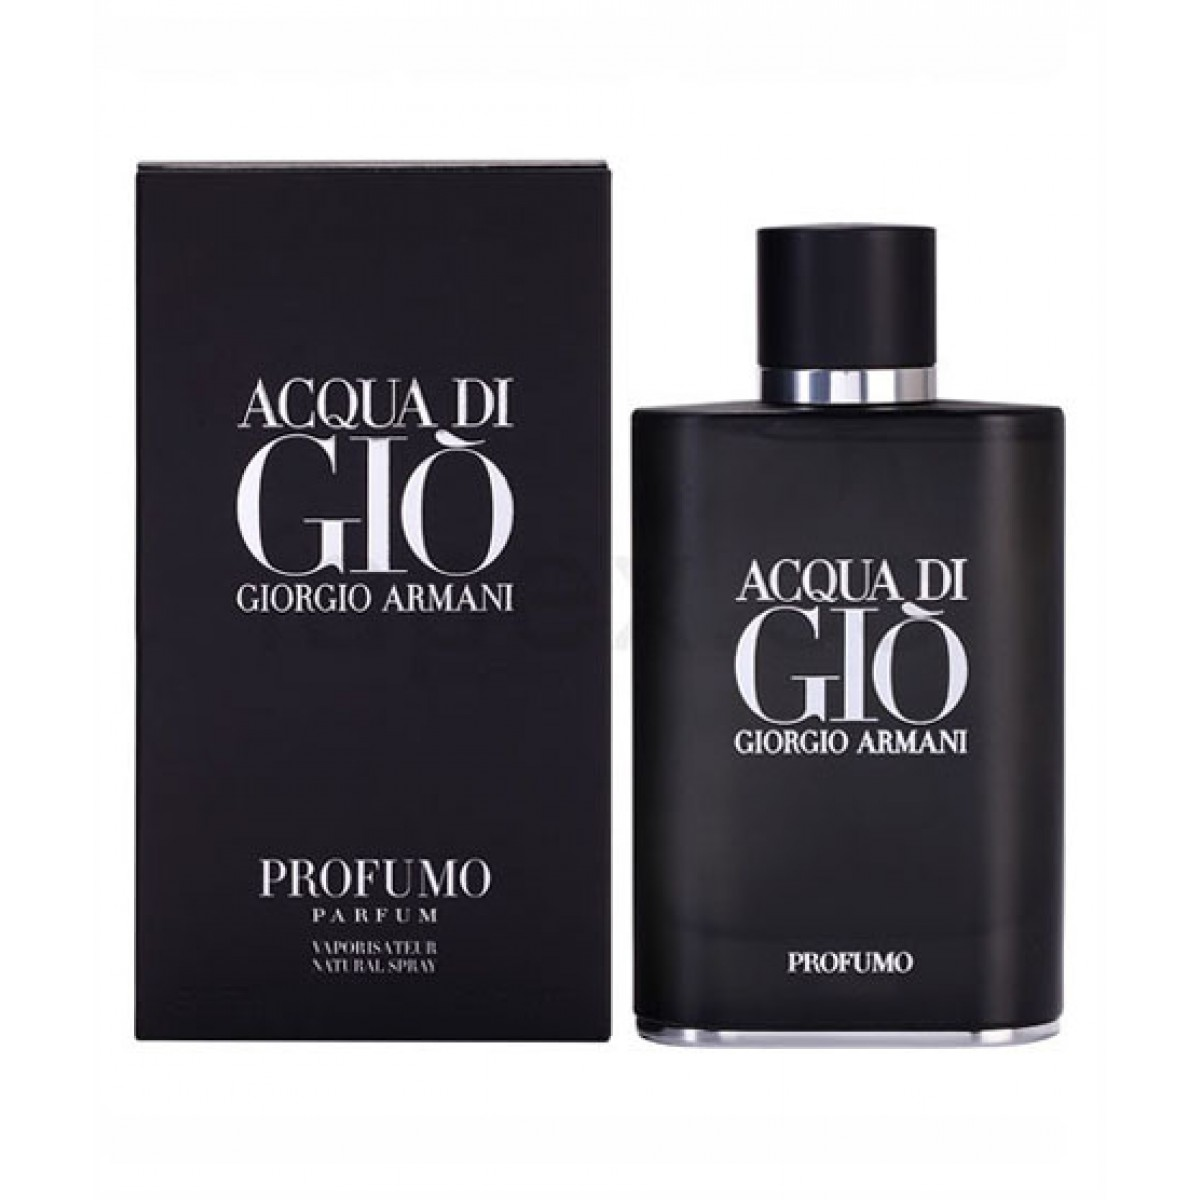 giorgio-armani-acqua-di-gio-profumo-125ml-for-men